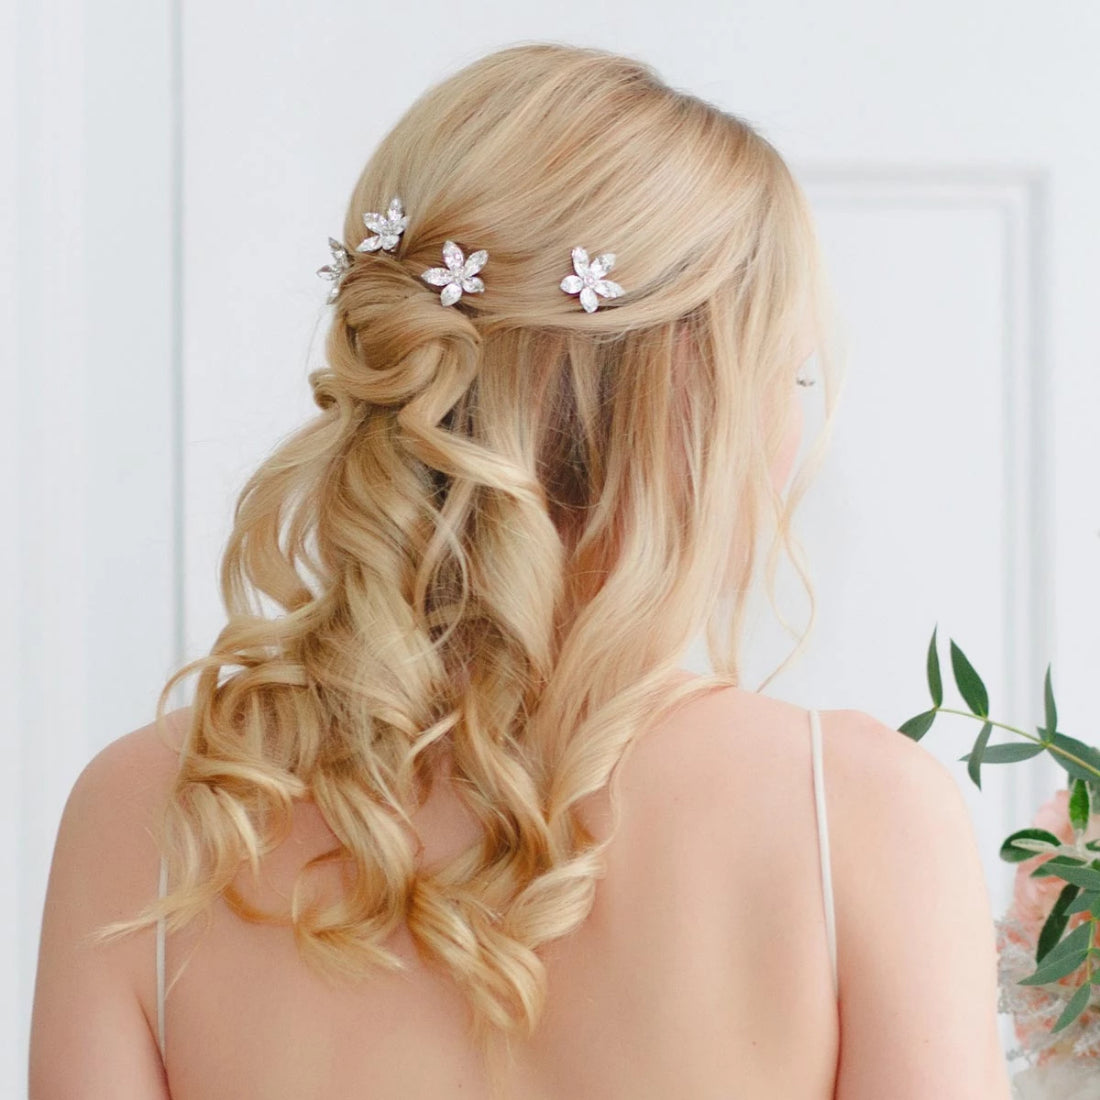 Petals of Love Crystal Hair Combs shown in a bridal half up hairstyle